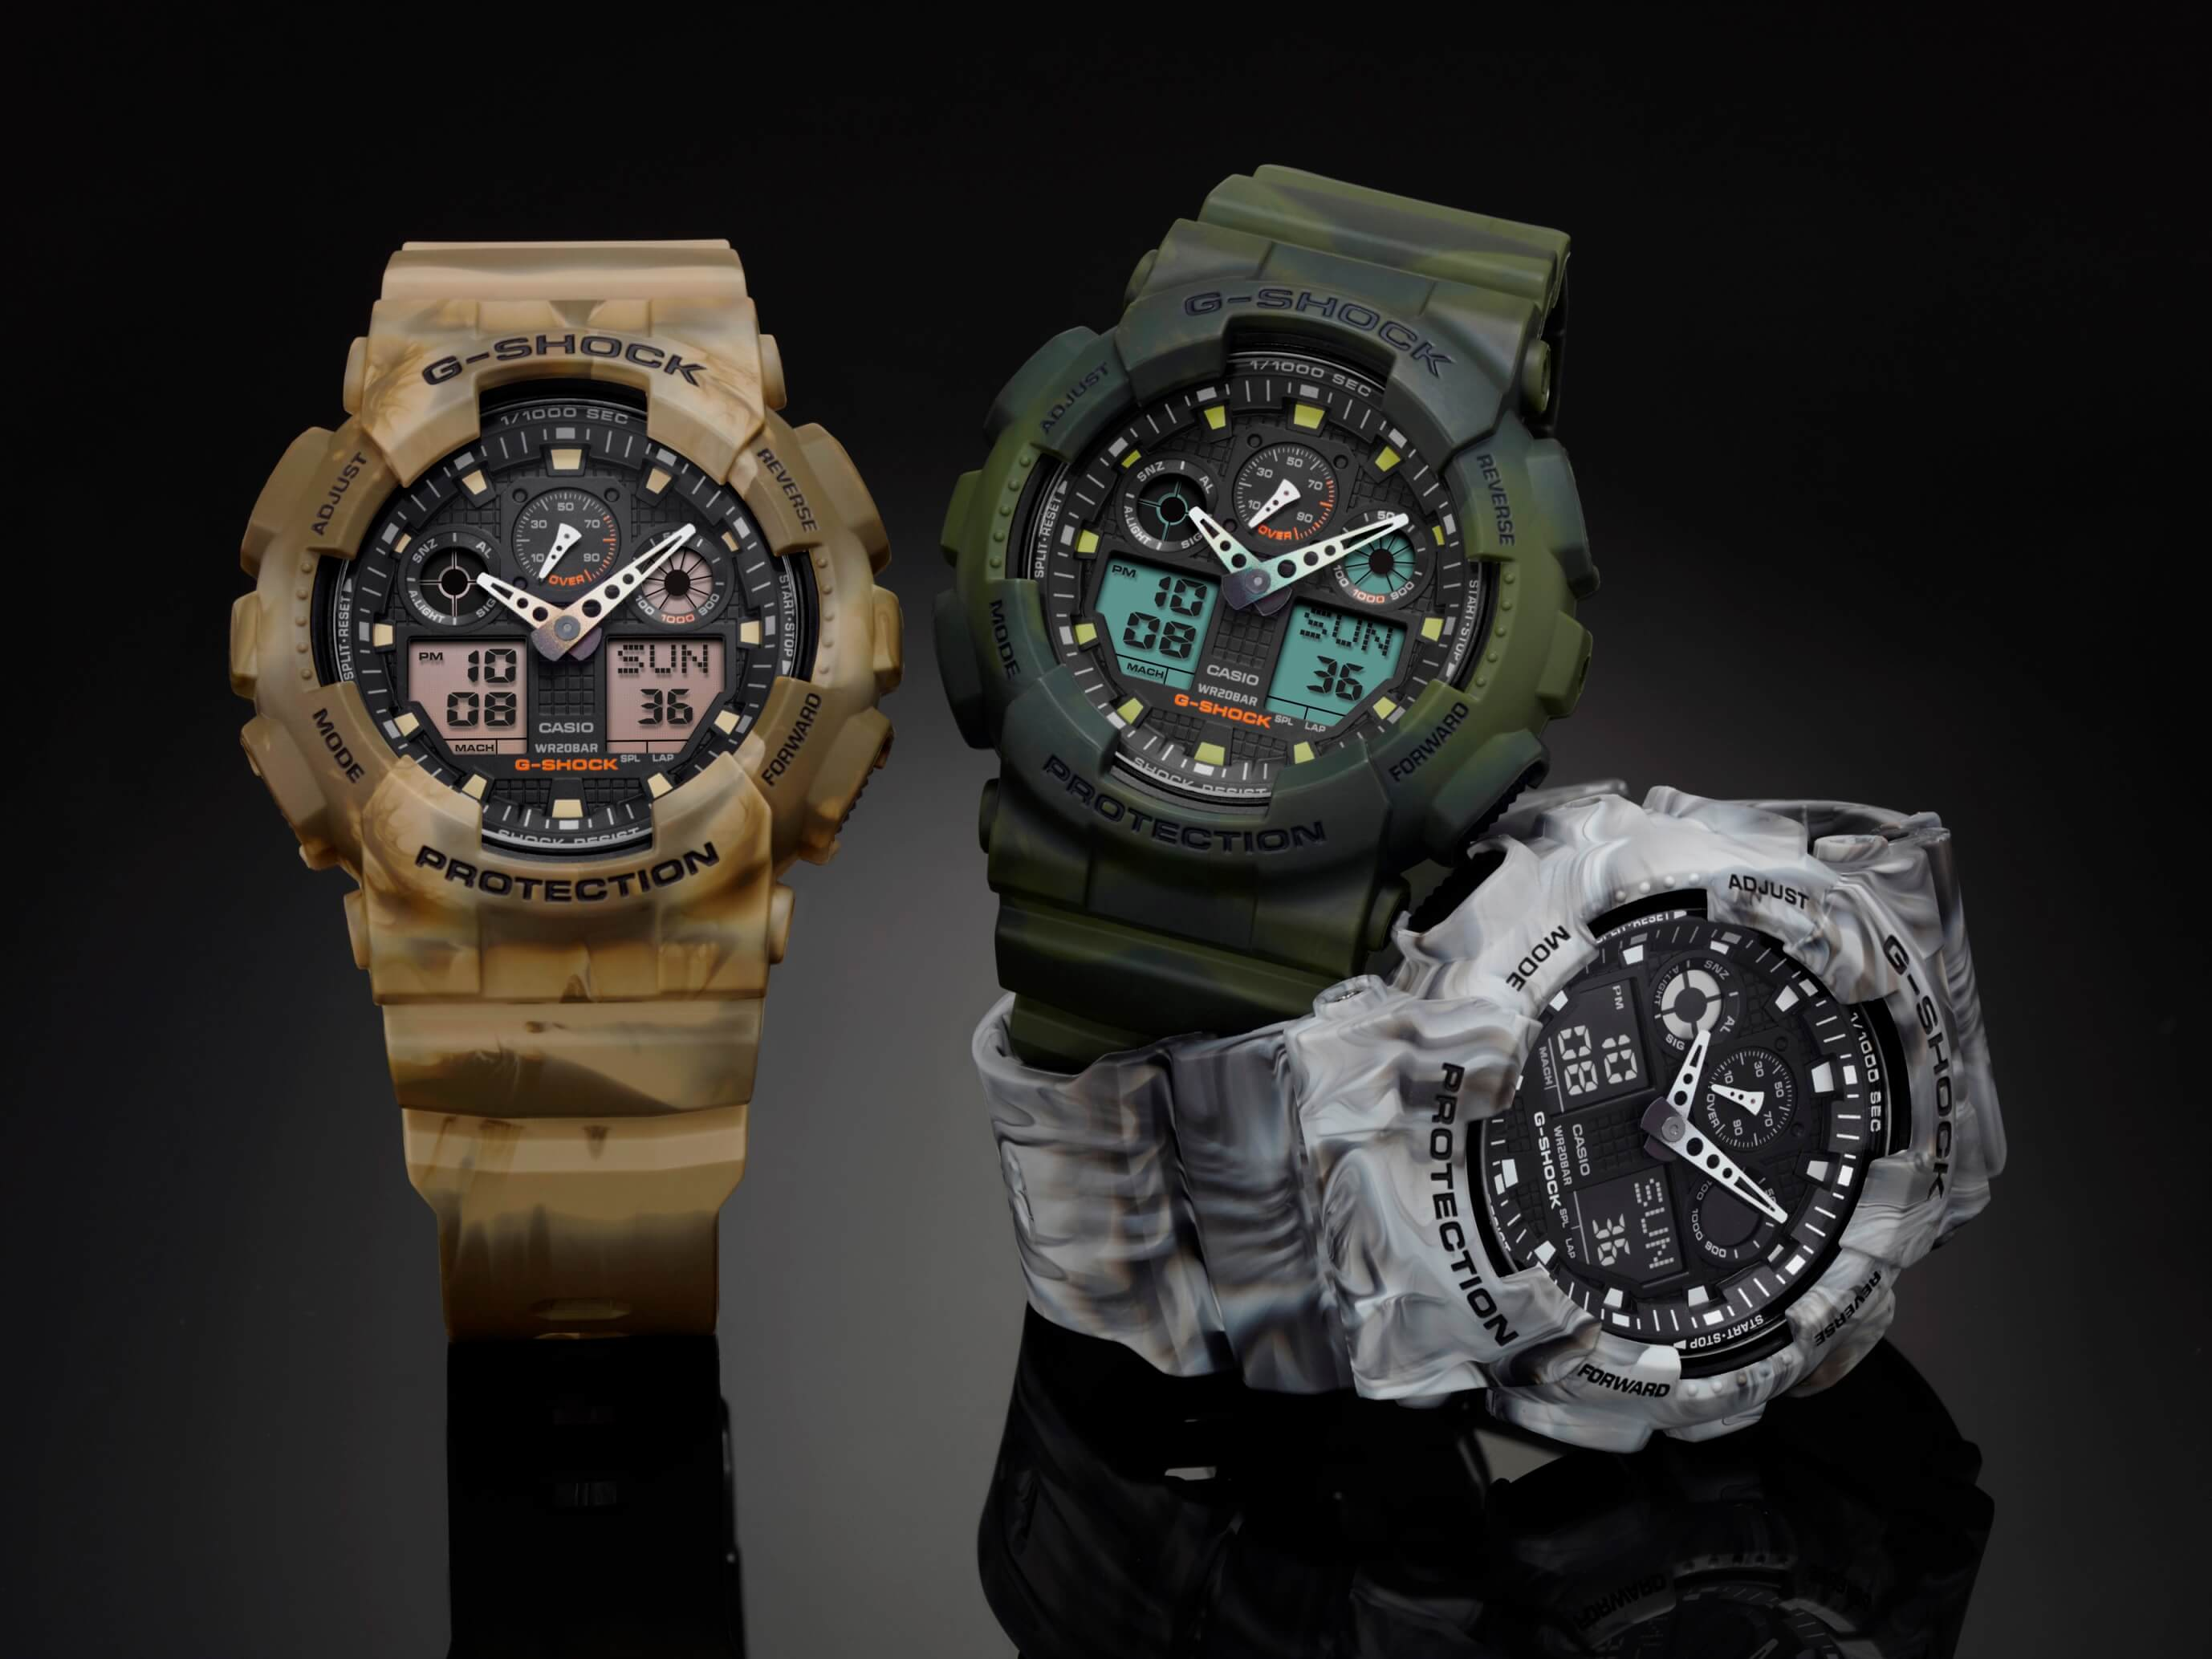 d6537a0735ef G-Shock GA-100MM Marble Edition Camouflage Series – G-Central G ...